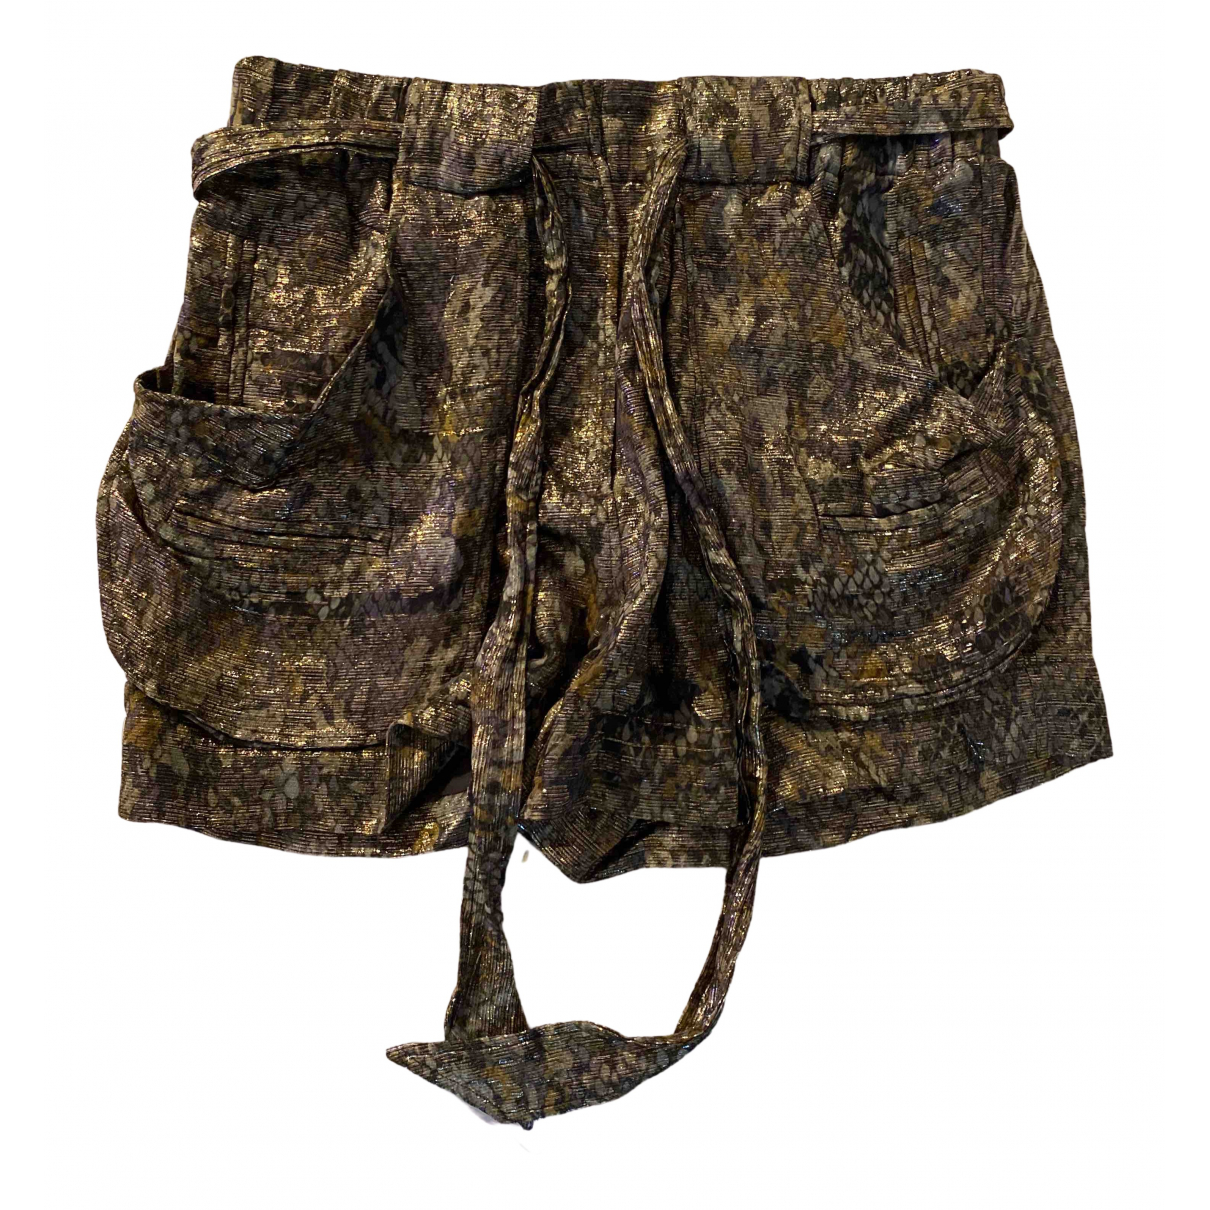 Isabel Marant N Multicolour Silk Shorts for Women 38 IT